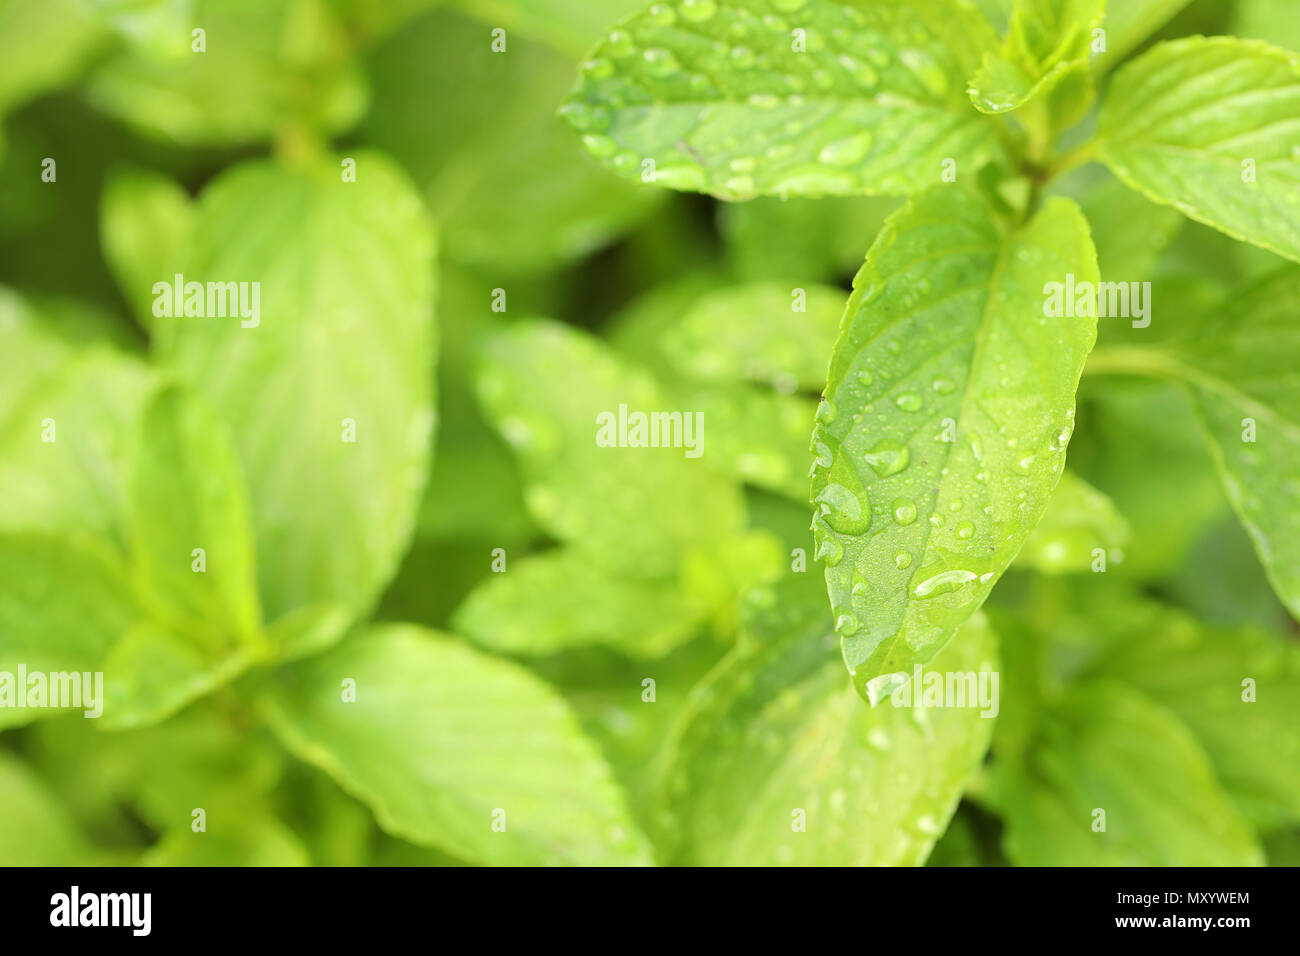 close up image of perenial basil herb herbal plant. healthy living cooking ingredient. Vietnamese basil plant. home gardening detailed wet dew covered - Stock Image